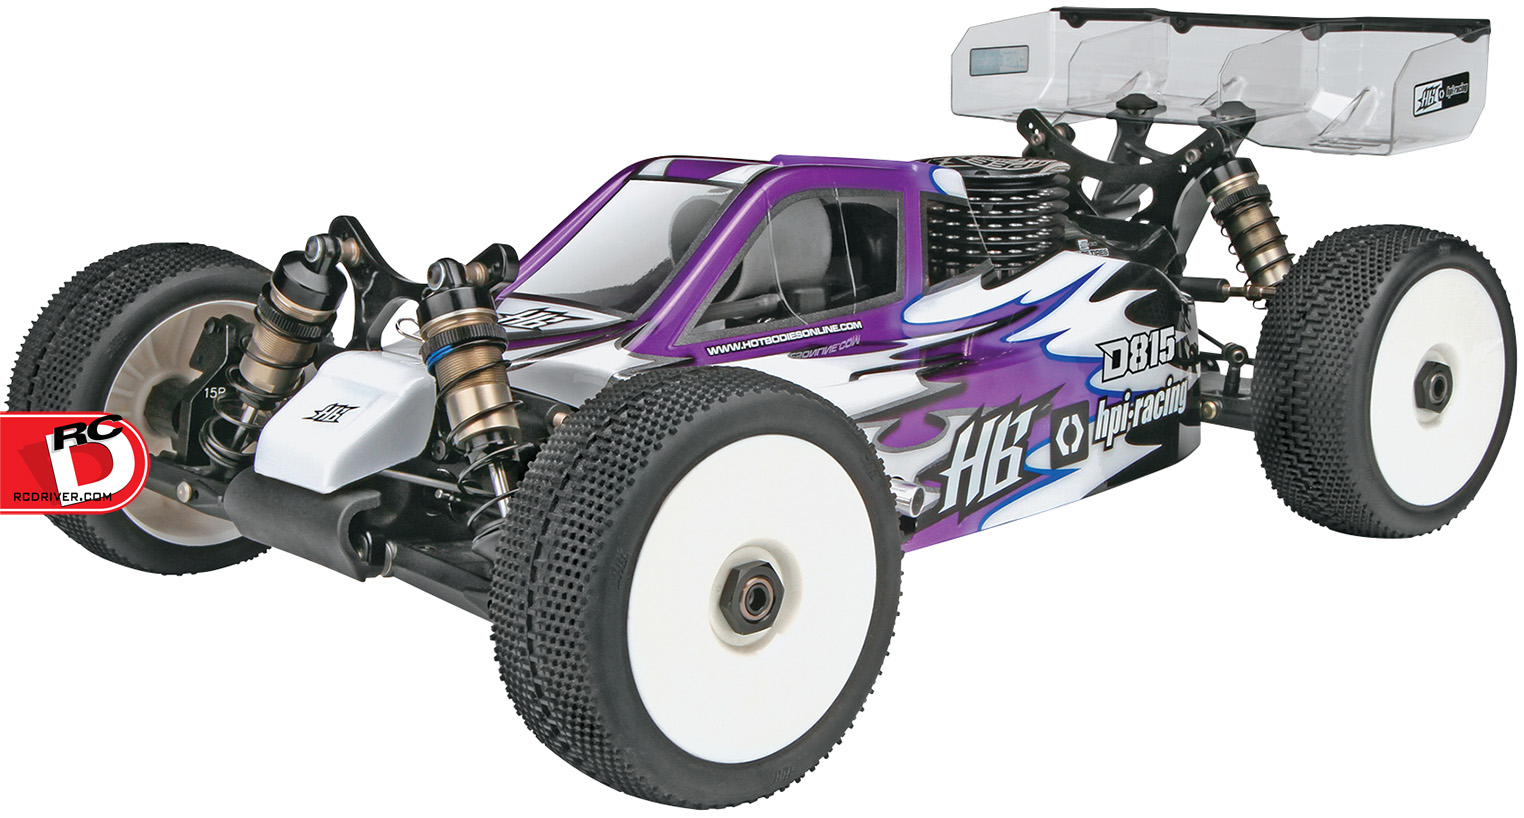 HB D815 Tessmann Worlds Edition 1/8 Buggy